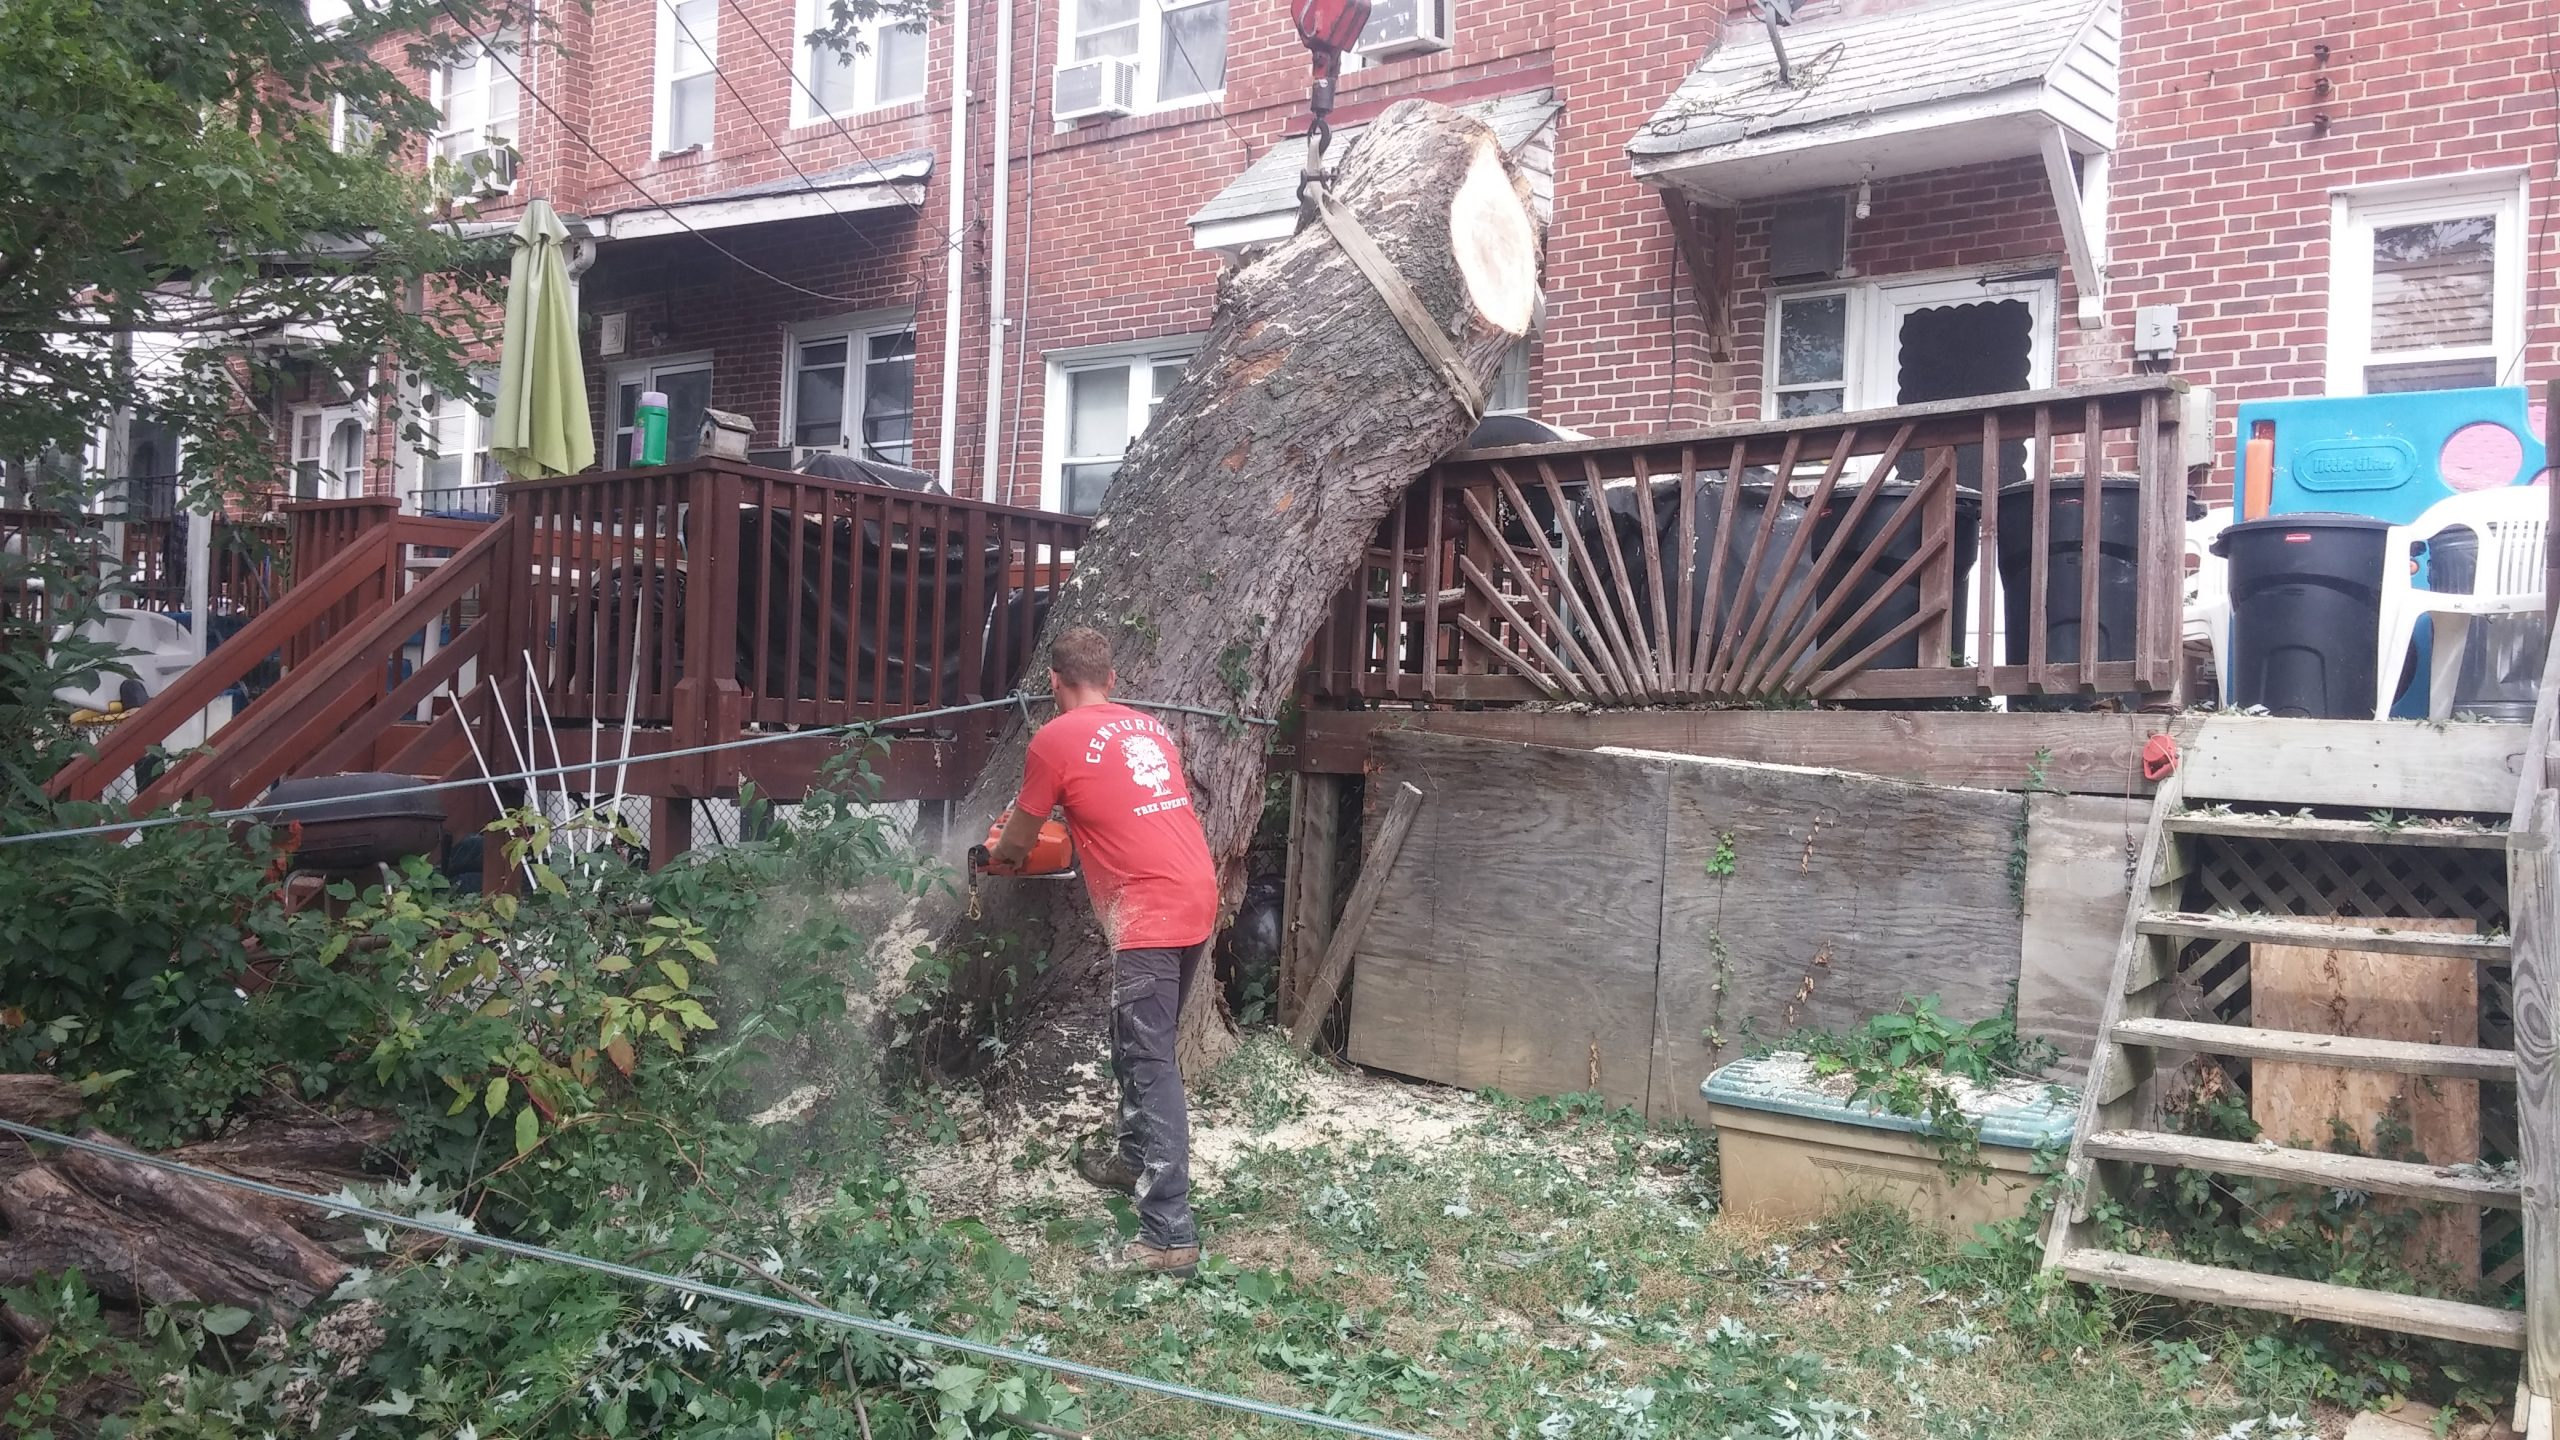 Tree removal from back yard in Baltimore, MD